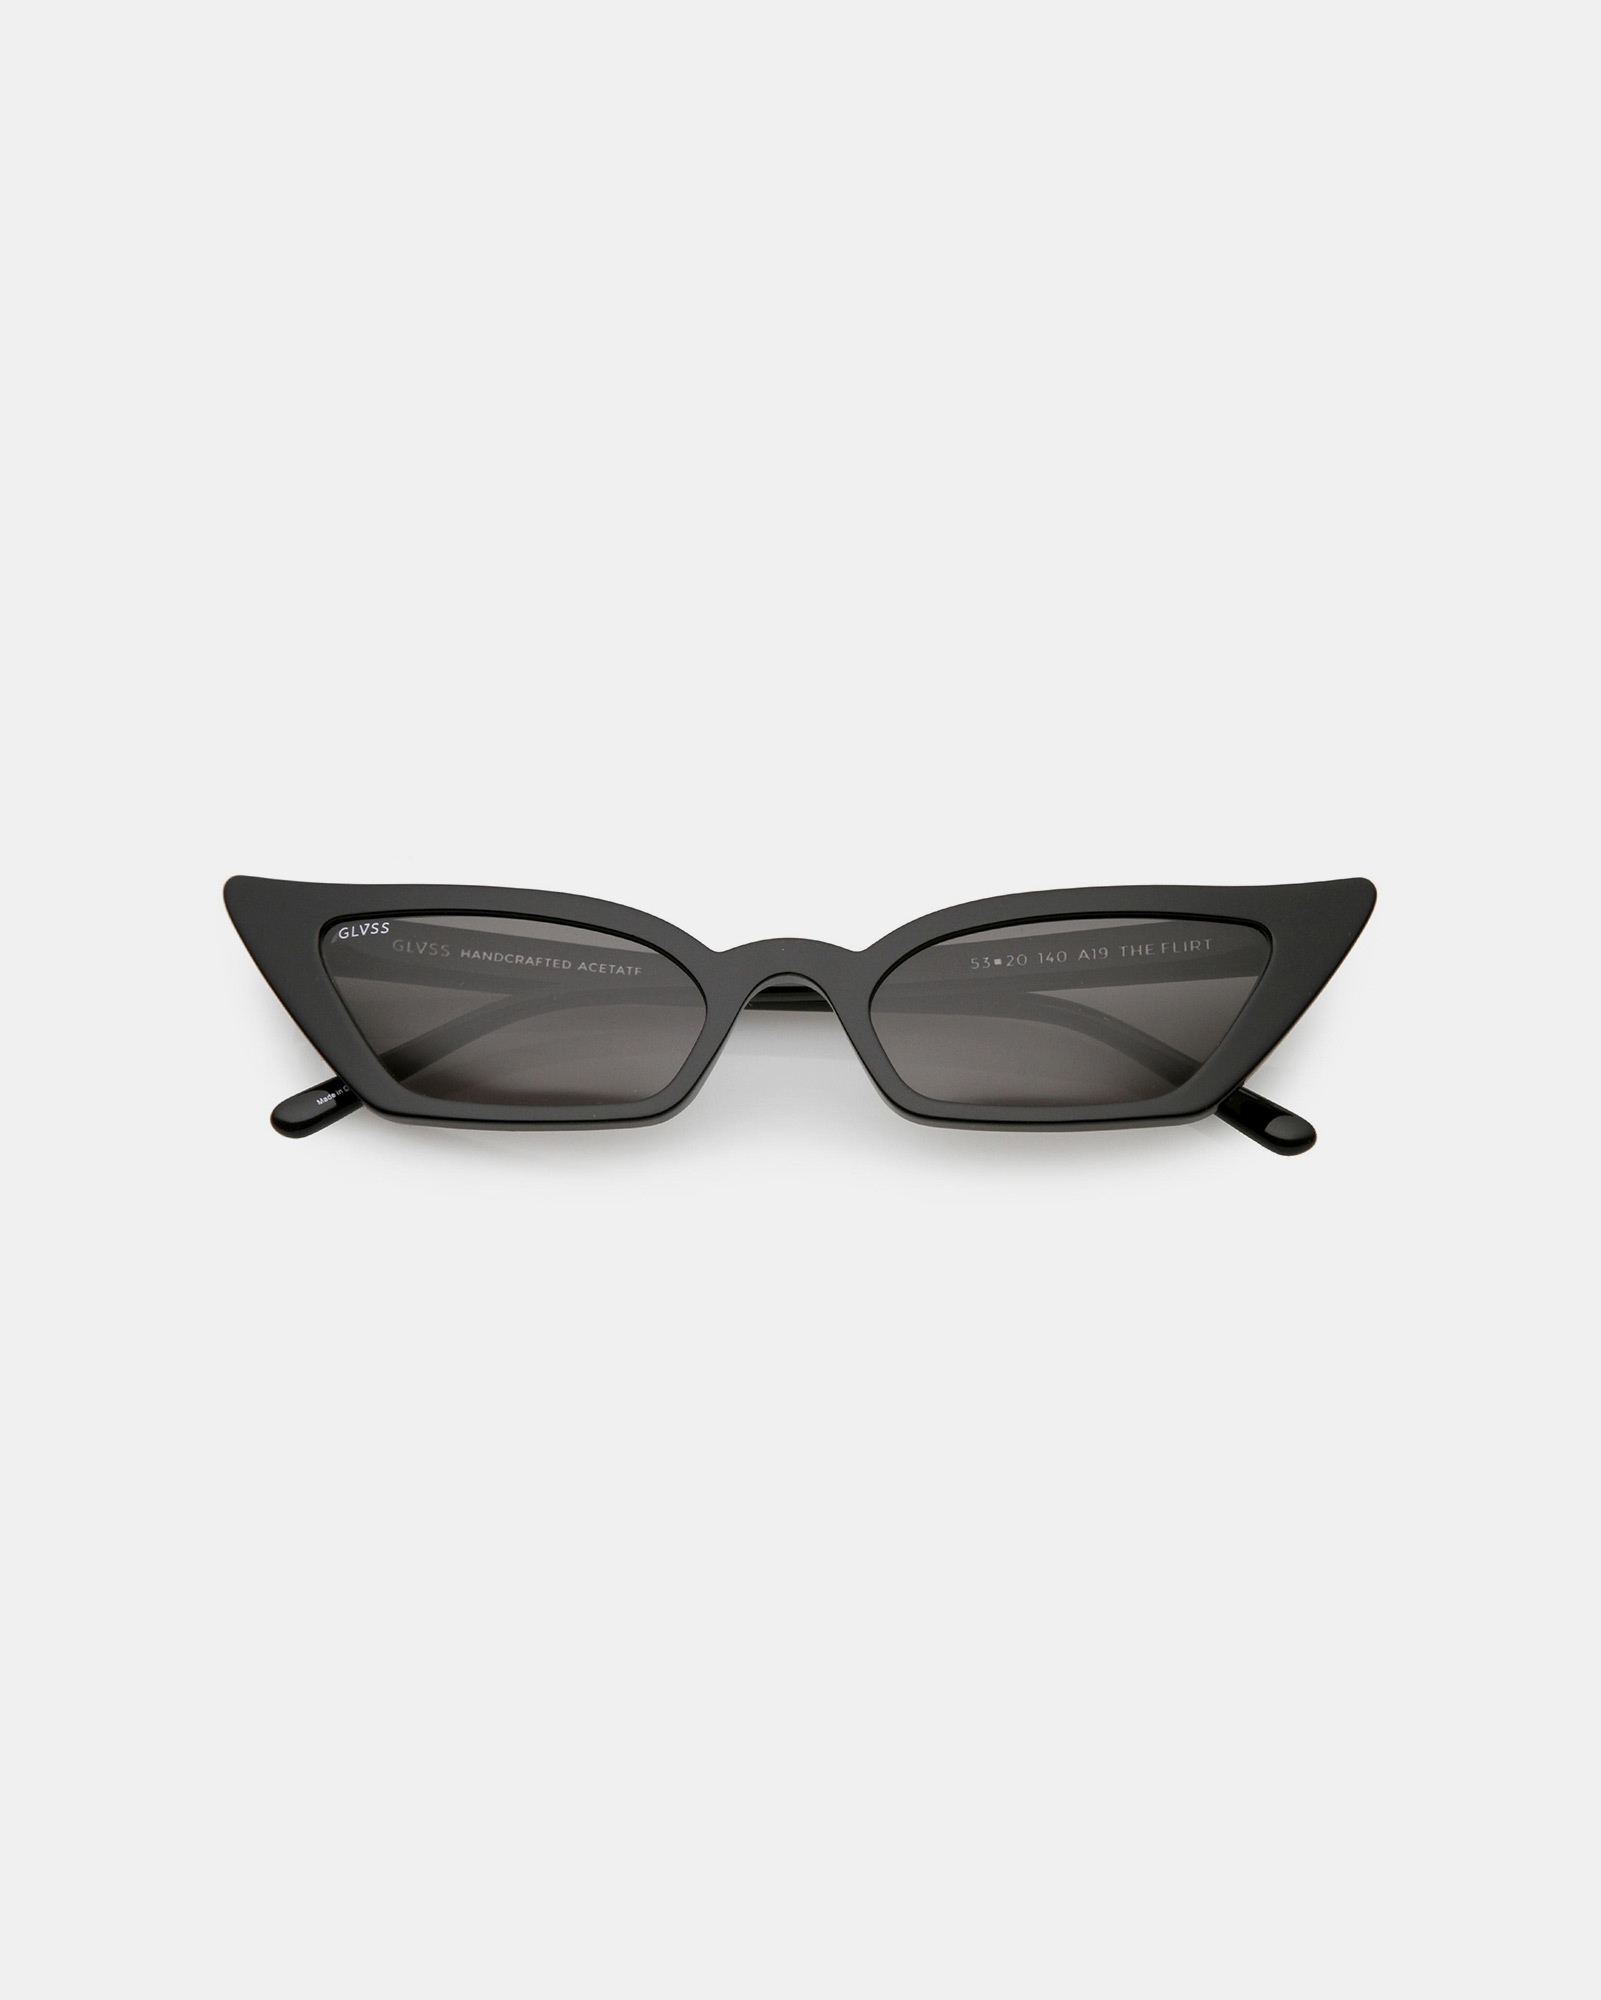 GLVSS The Flirt Black Sunglasses